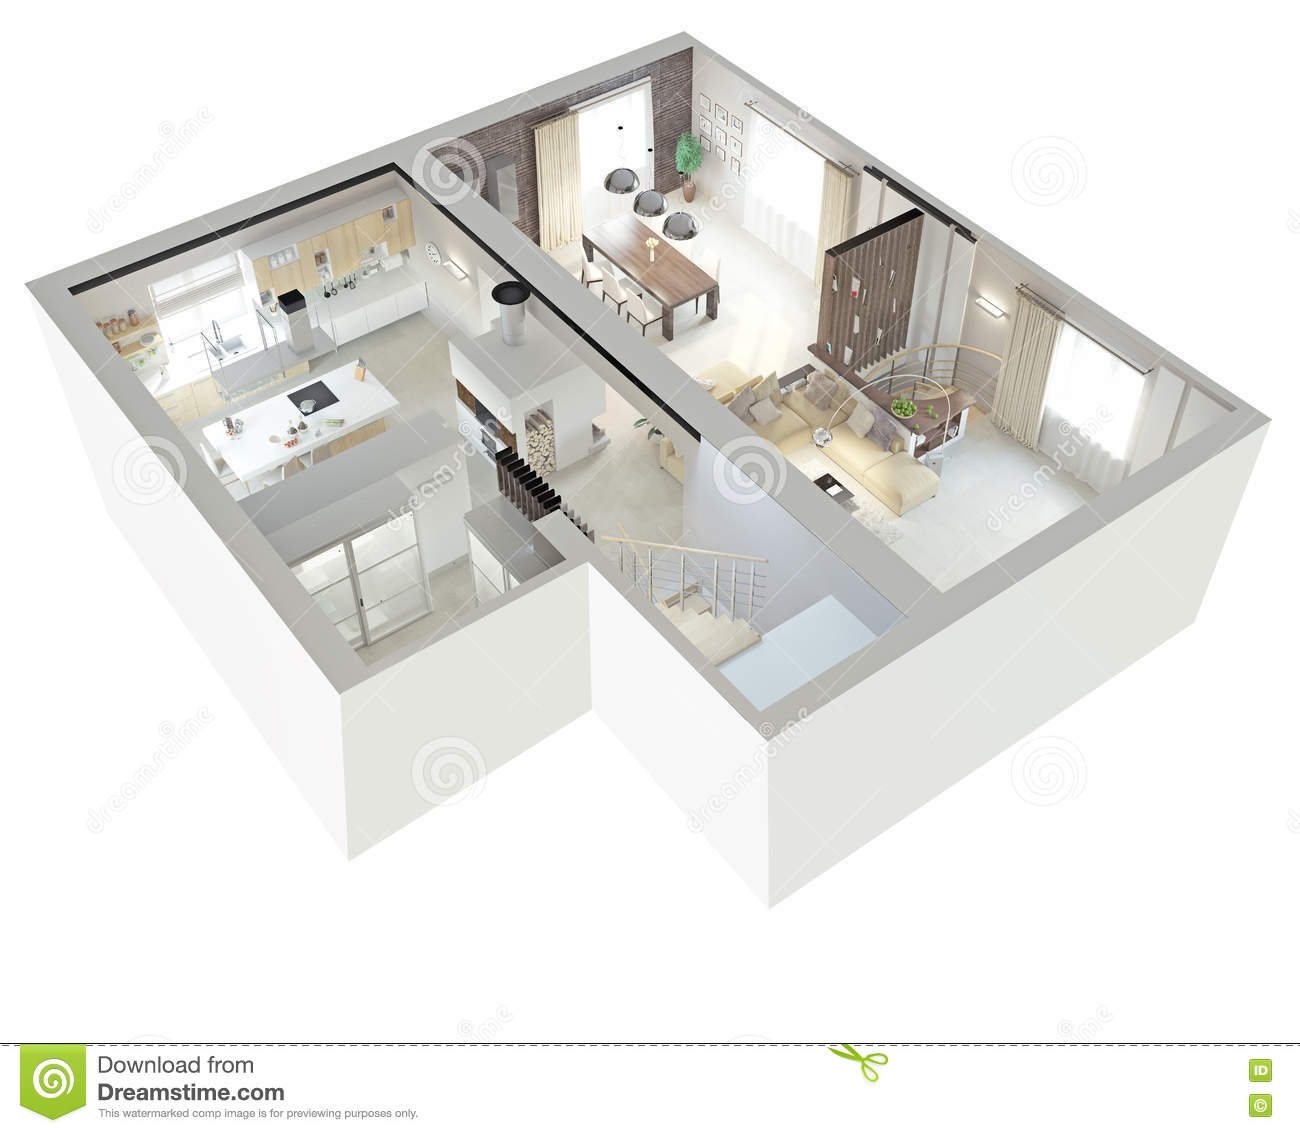 Vue de plan d 39 un appartement illustration stock for Conception 3d appartement